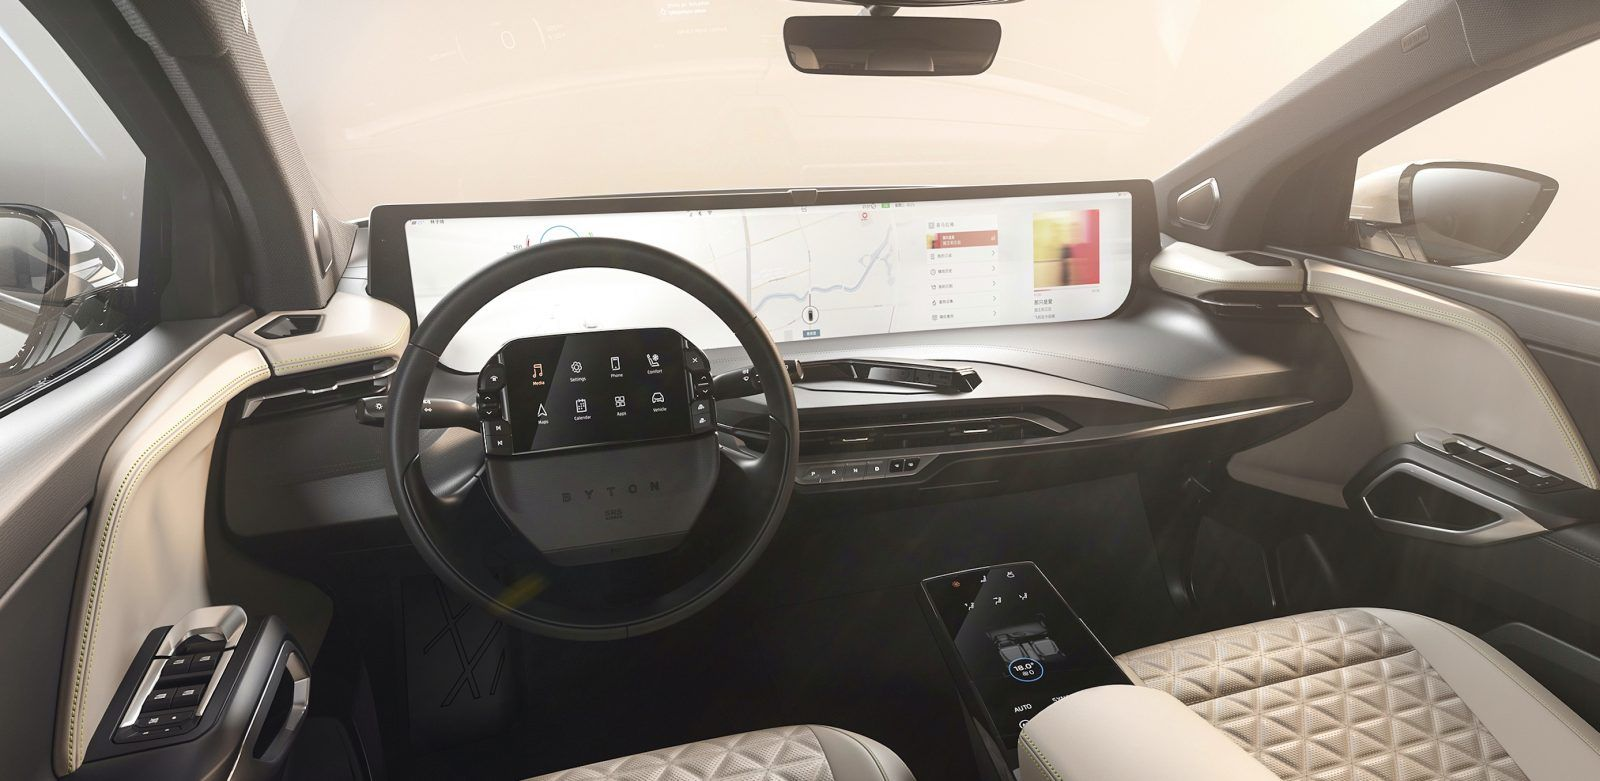 Byton Unveils Interior With Insane Screen Real Estate For Its Production Electric Car Byton A Well Funded Cars Electric Cars Electric Car All Electric Cars